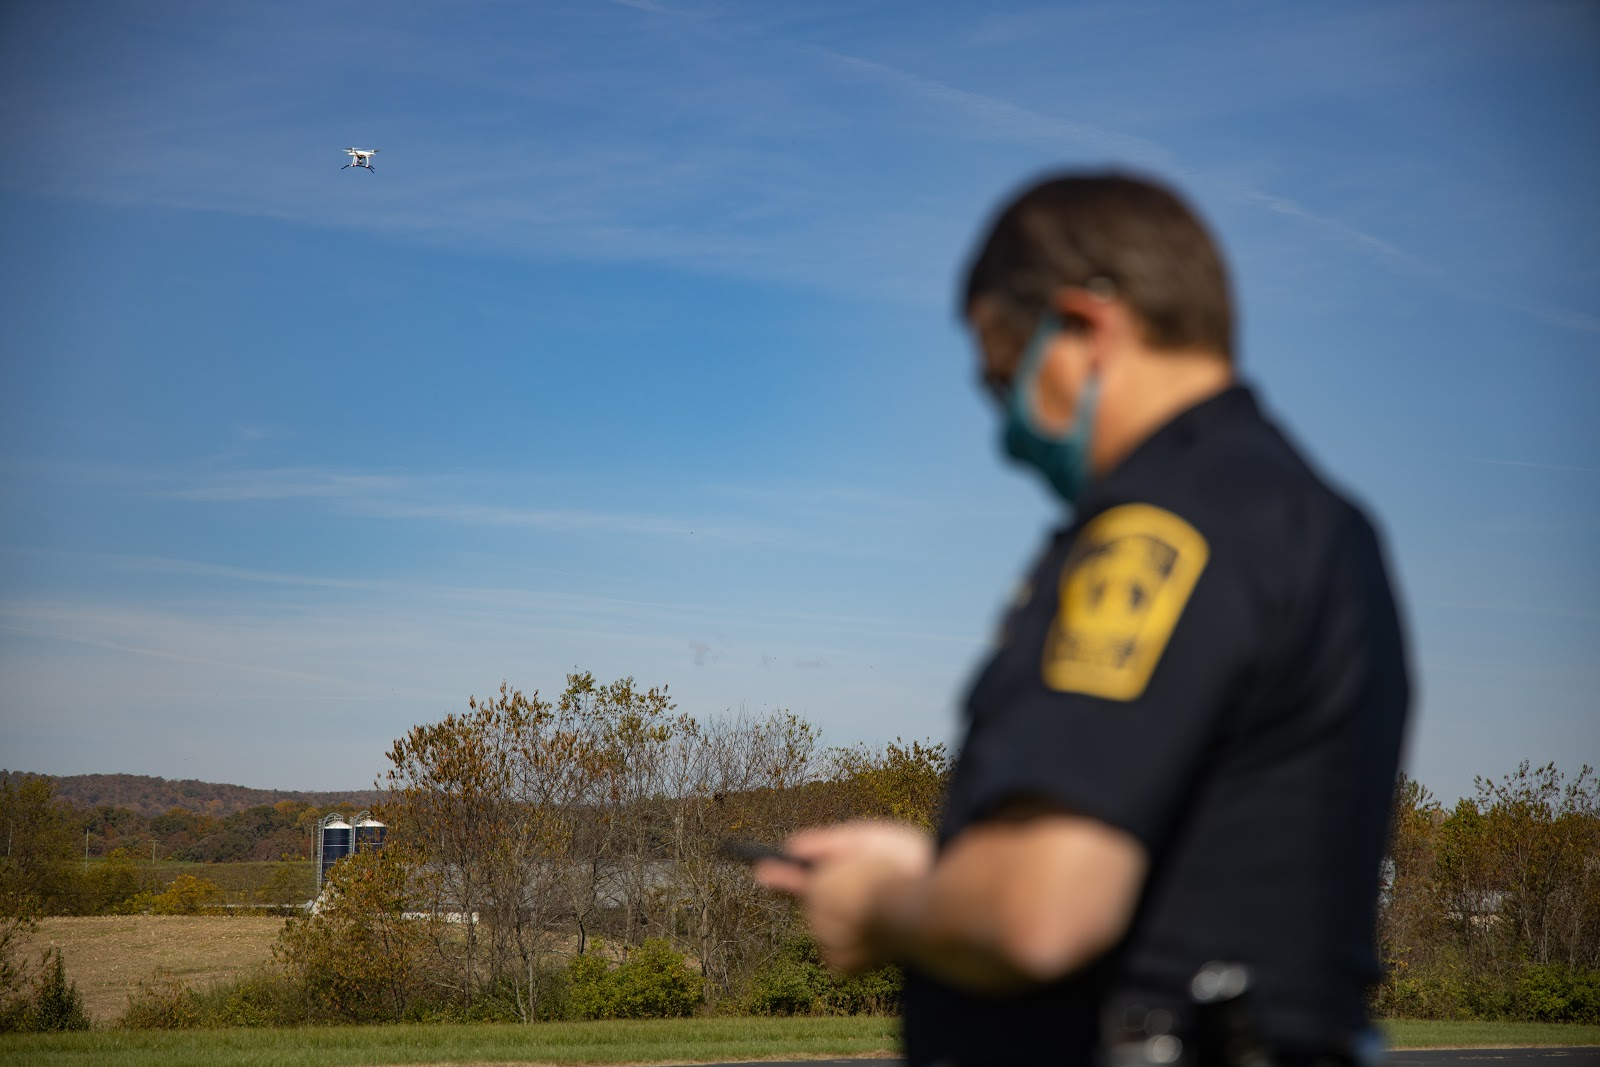 Police officer using remote ID to track drone activity in the area